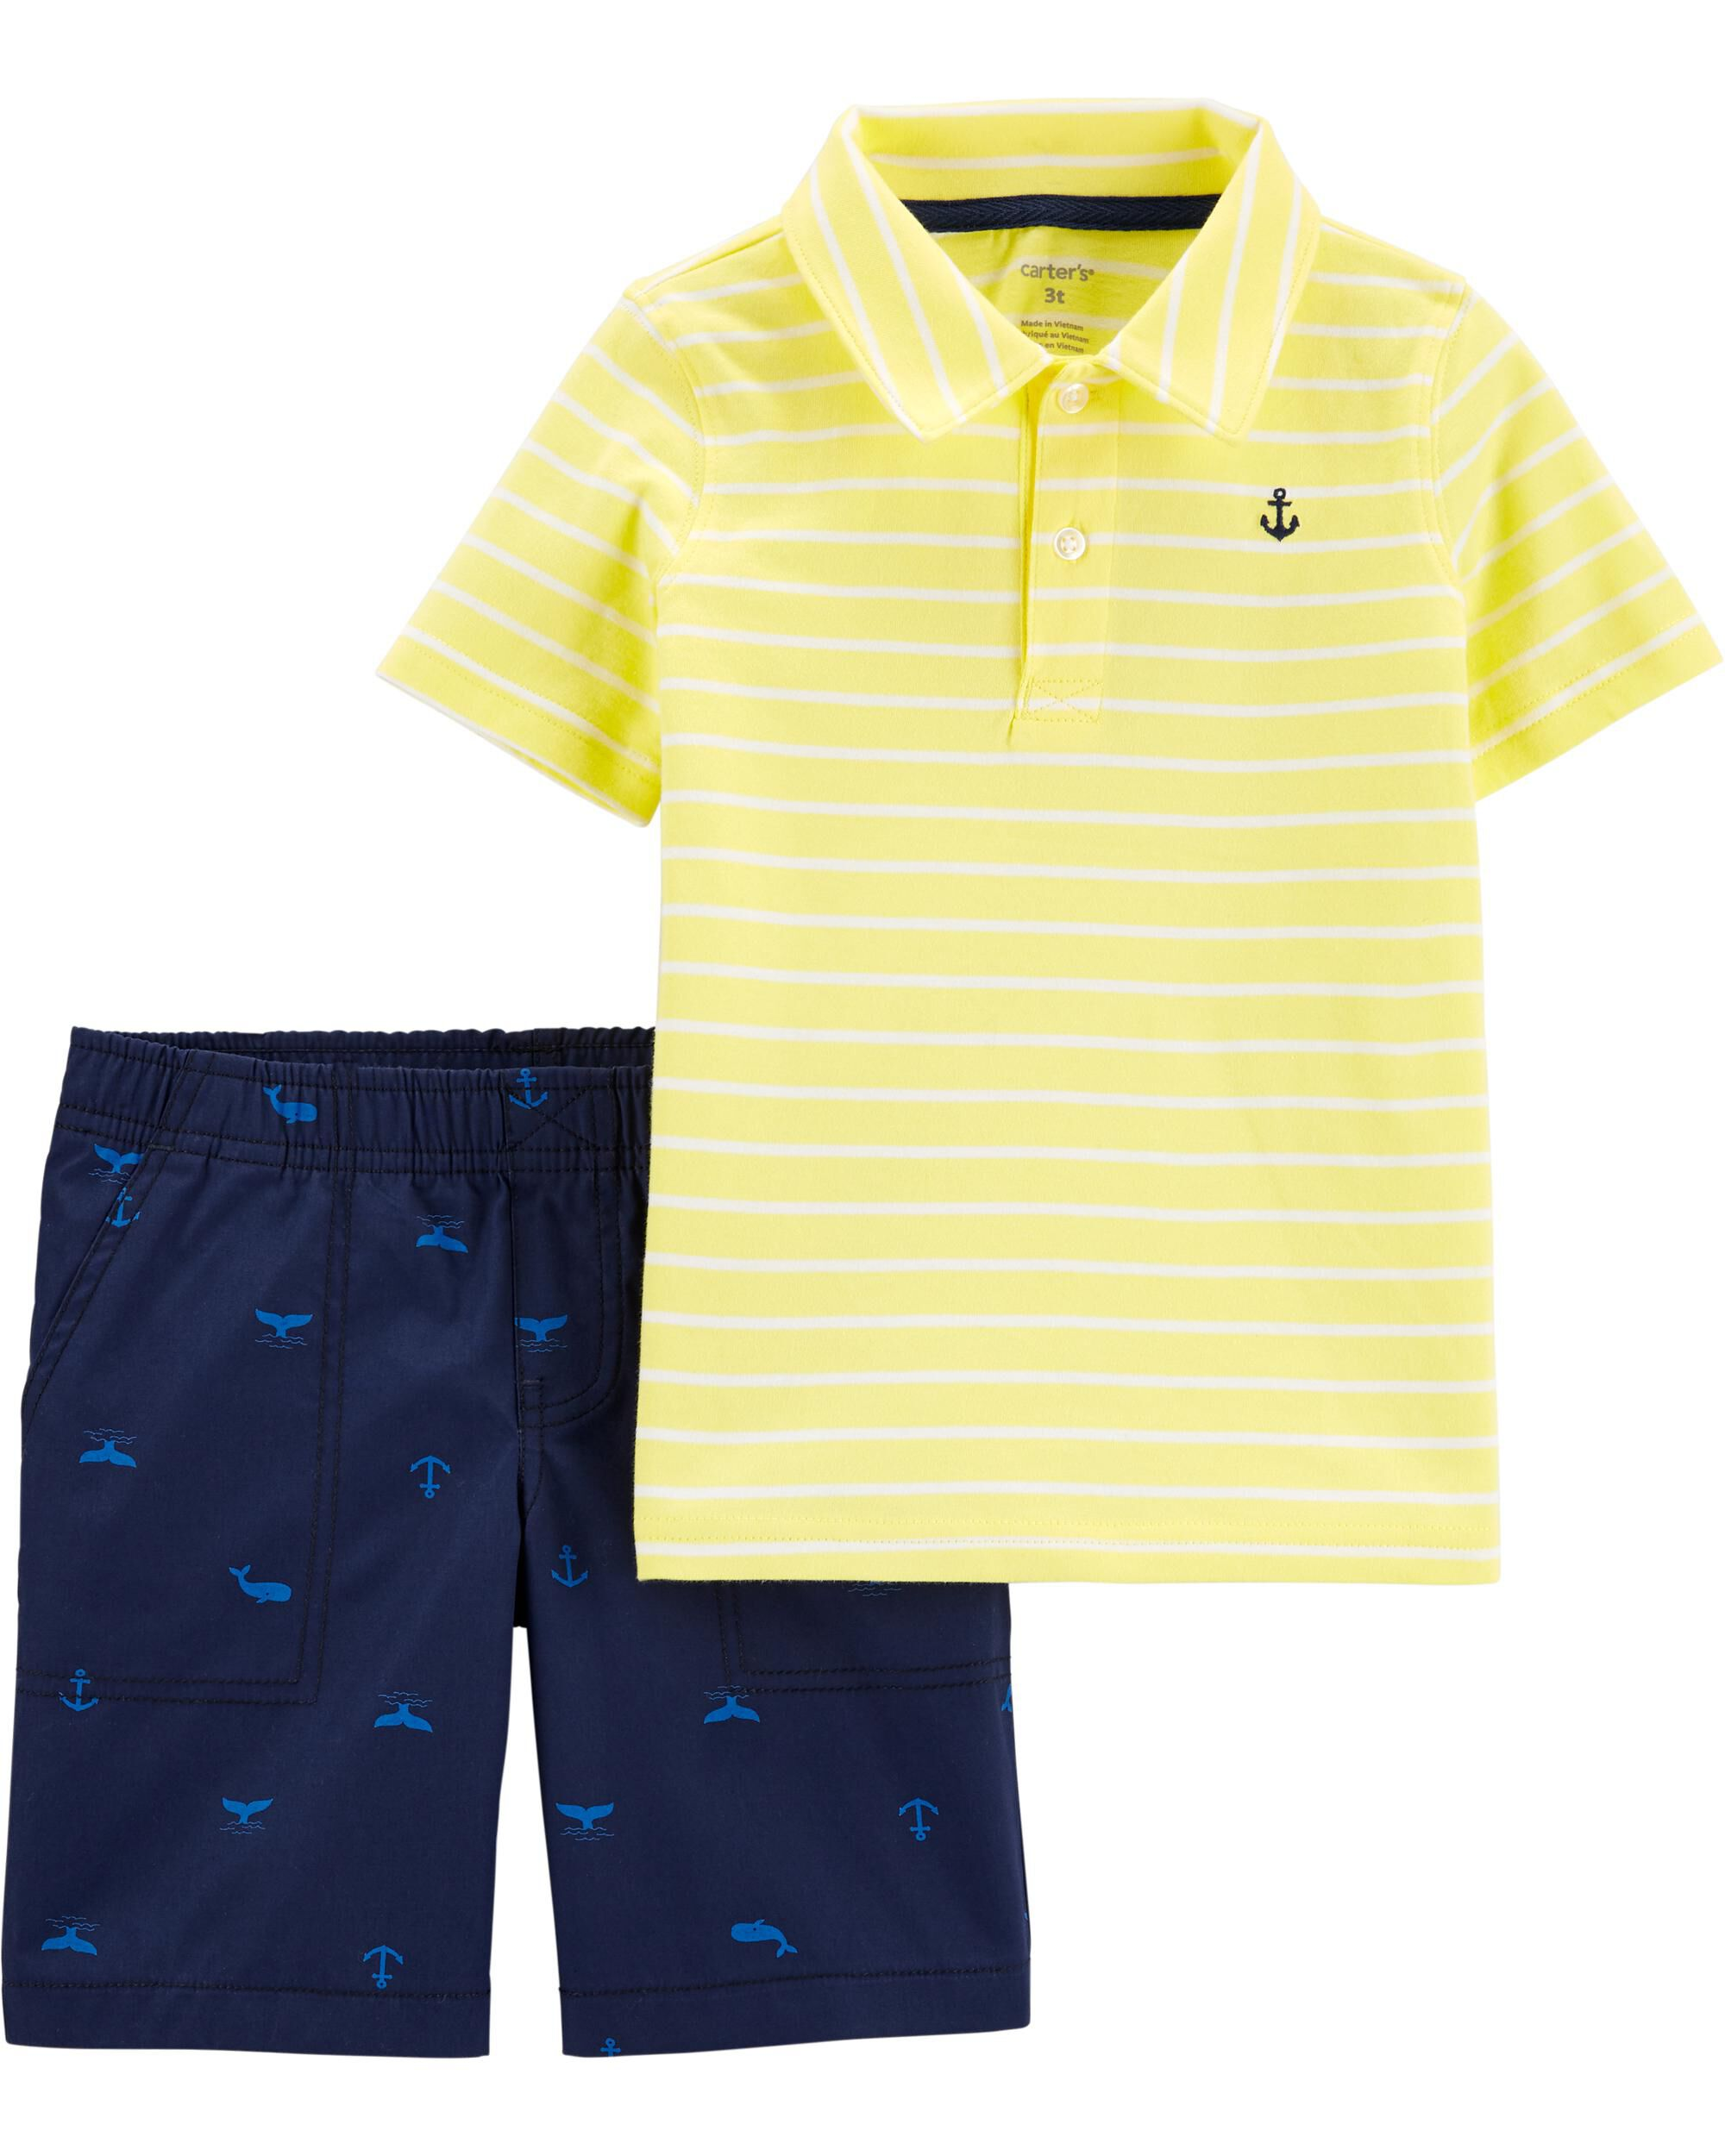 *DOORBUSTER* 2-Piece Striped Polo & Whale Short Set